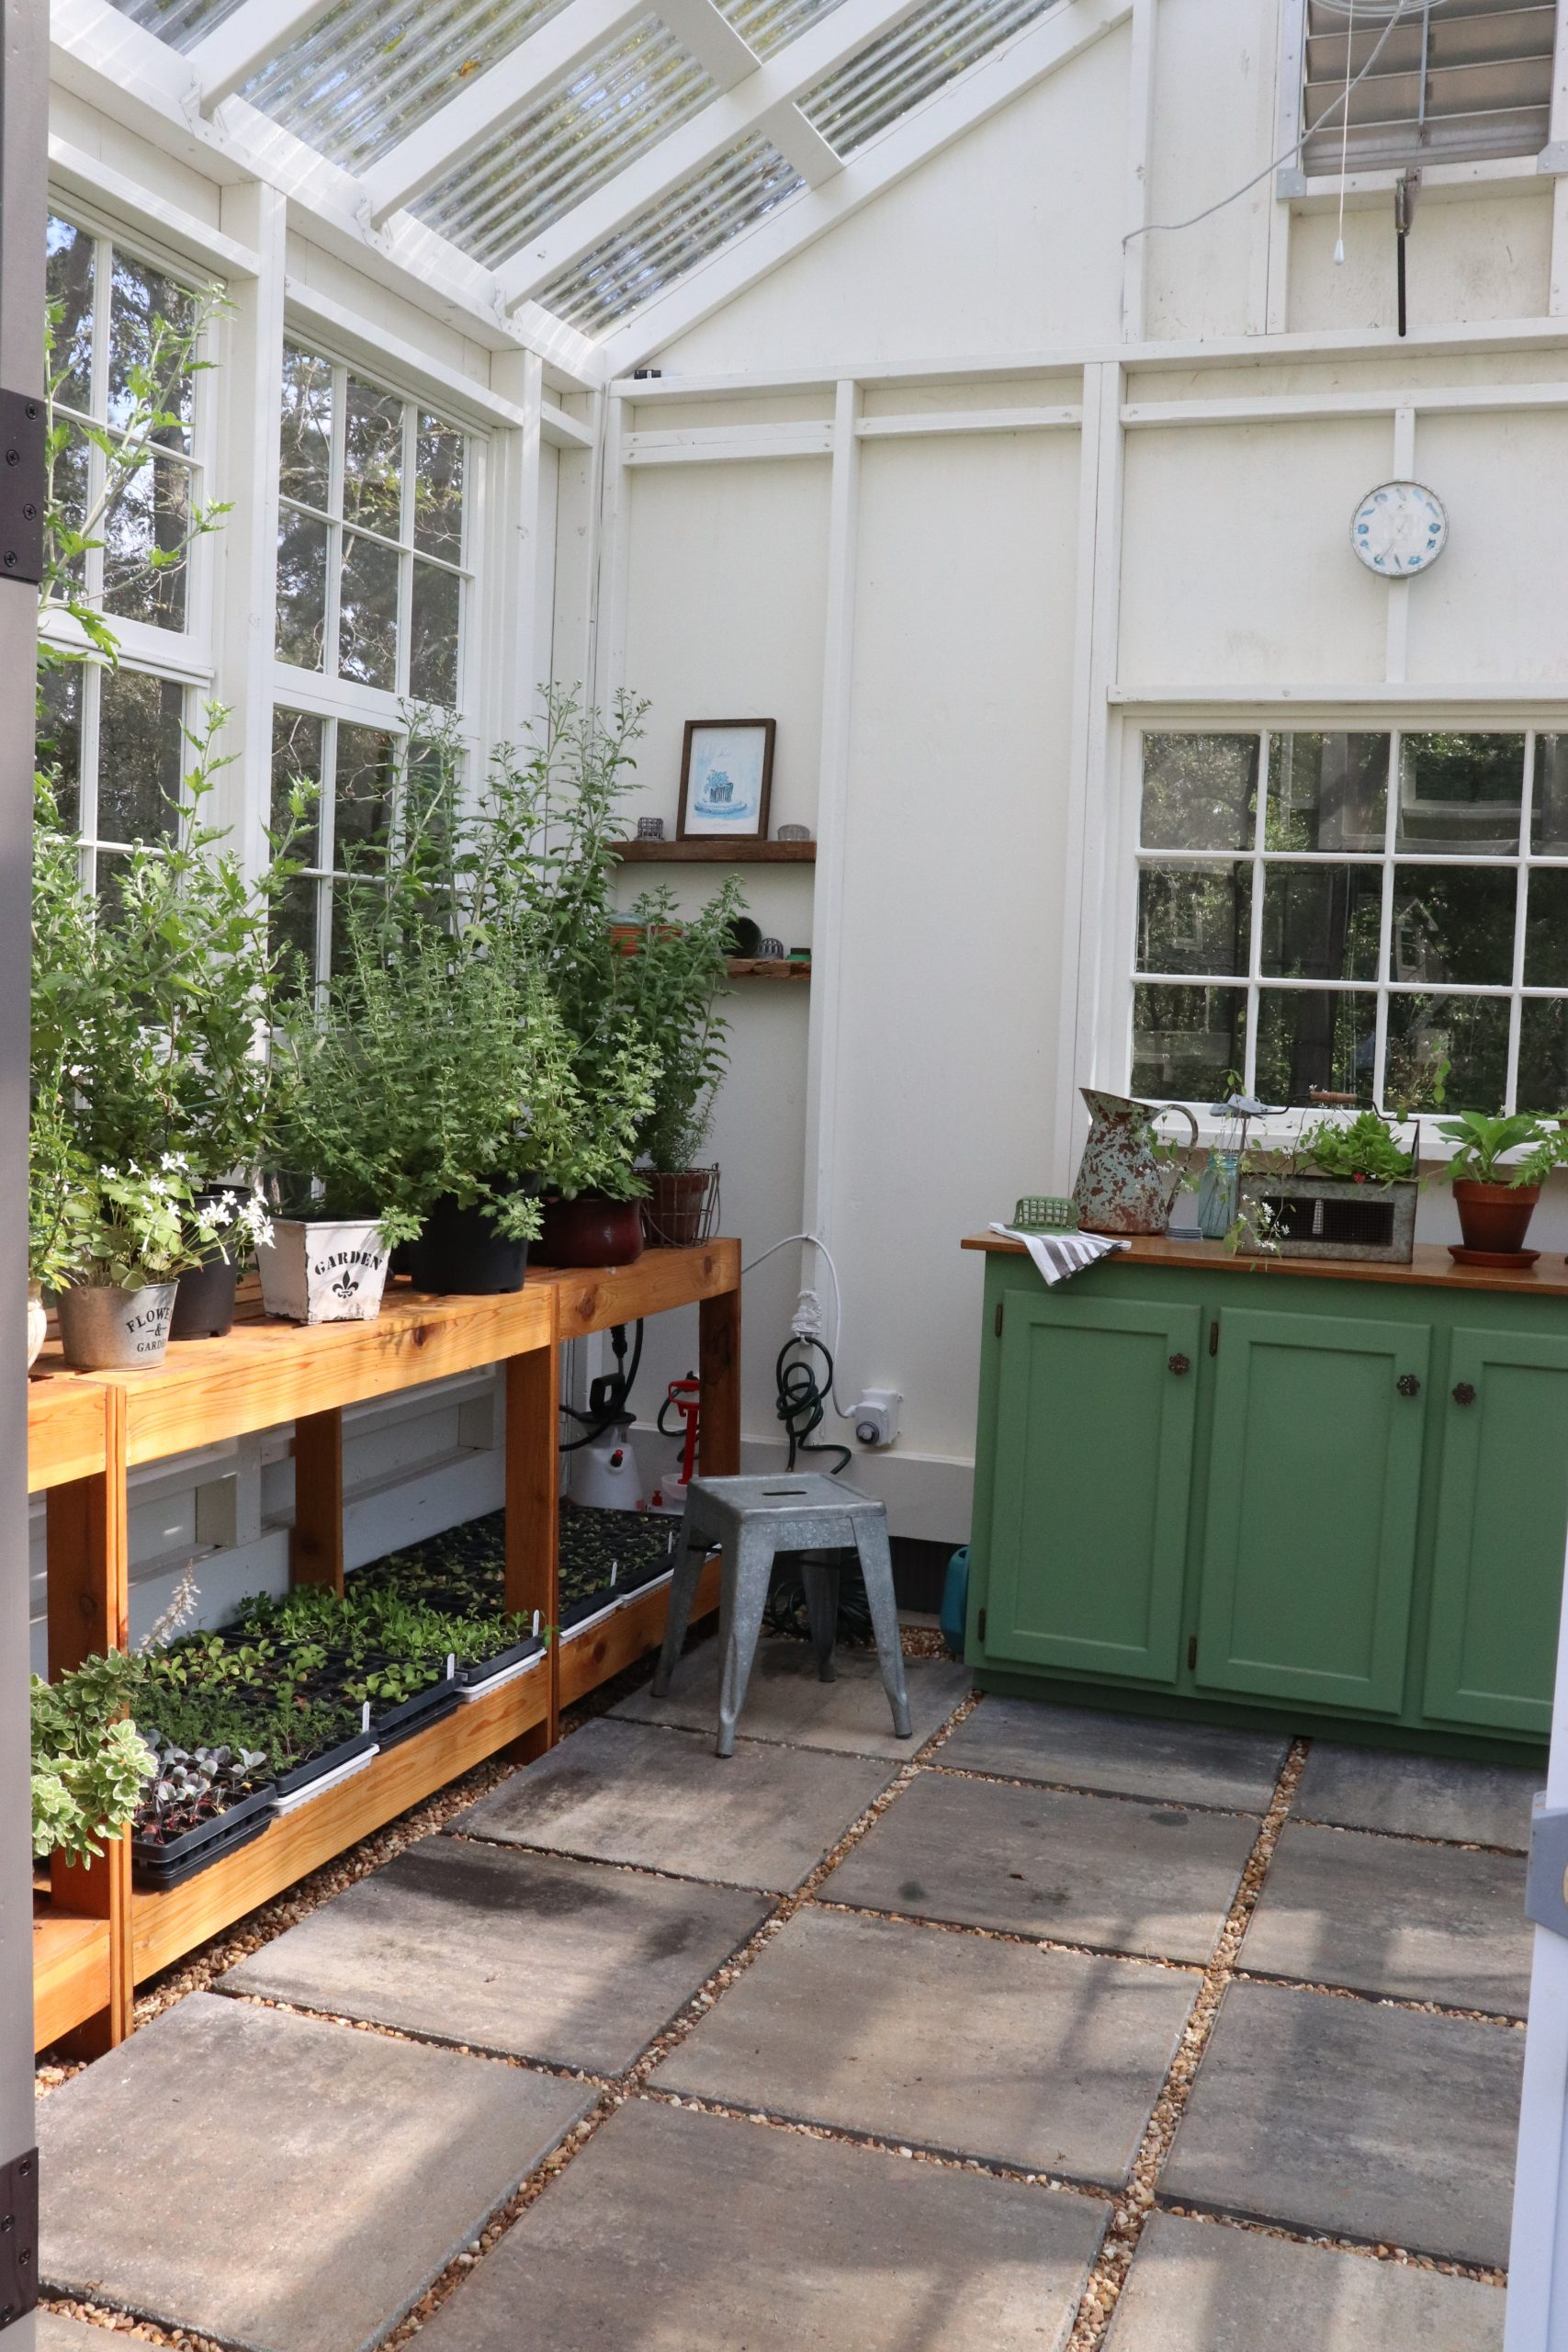 inside the she shed there are seedlings ready for planting in the cutting garden